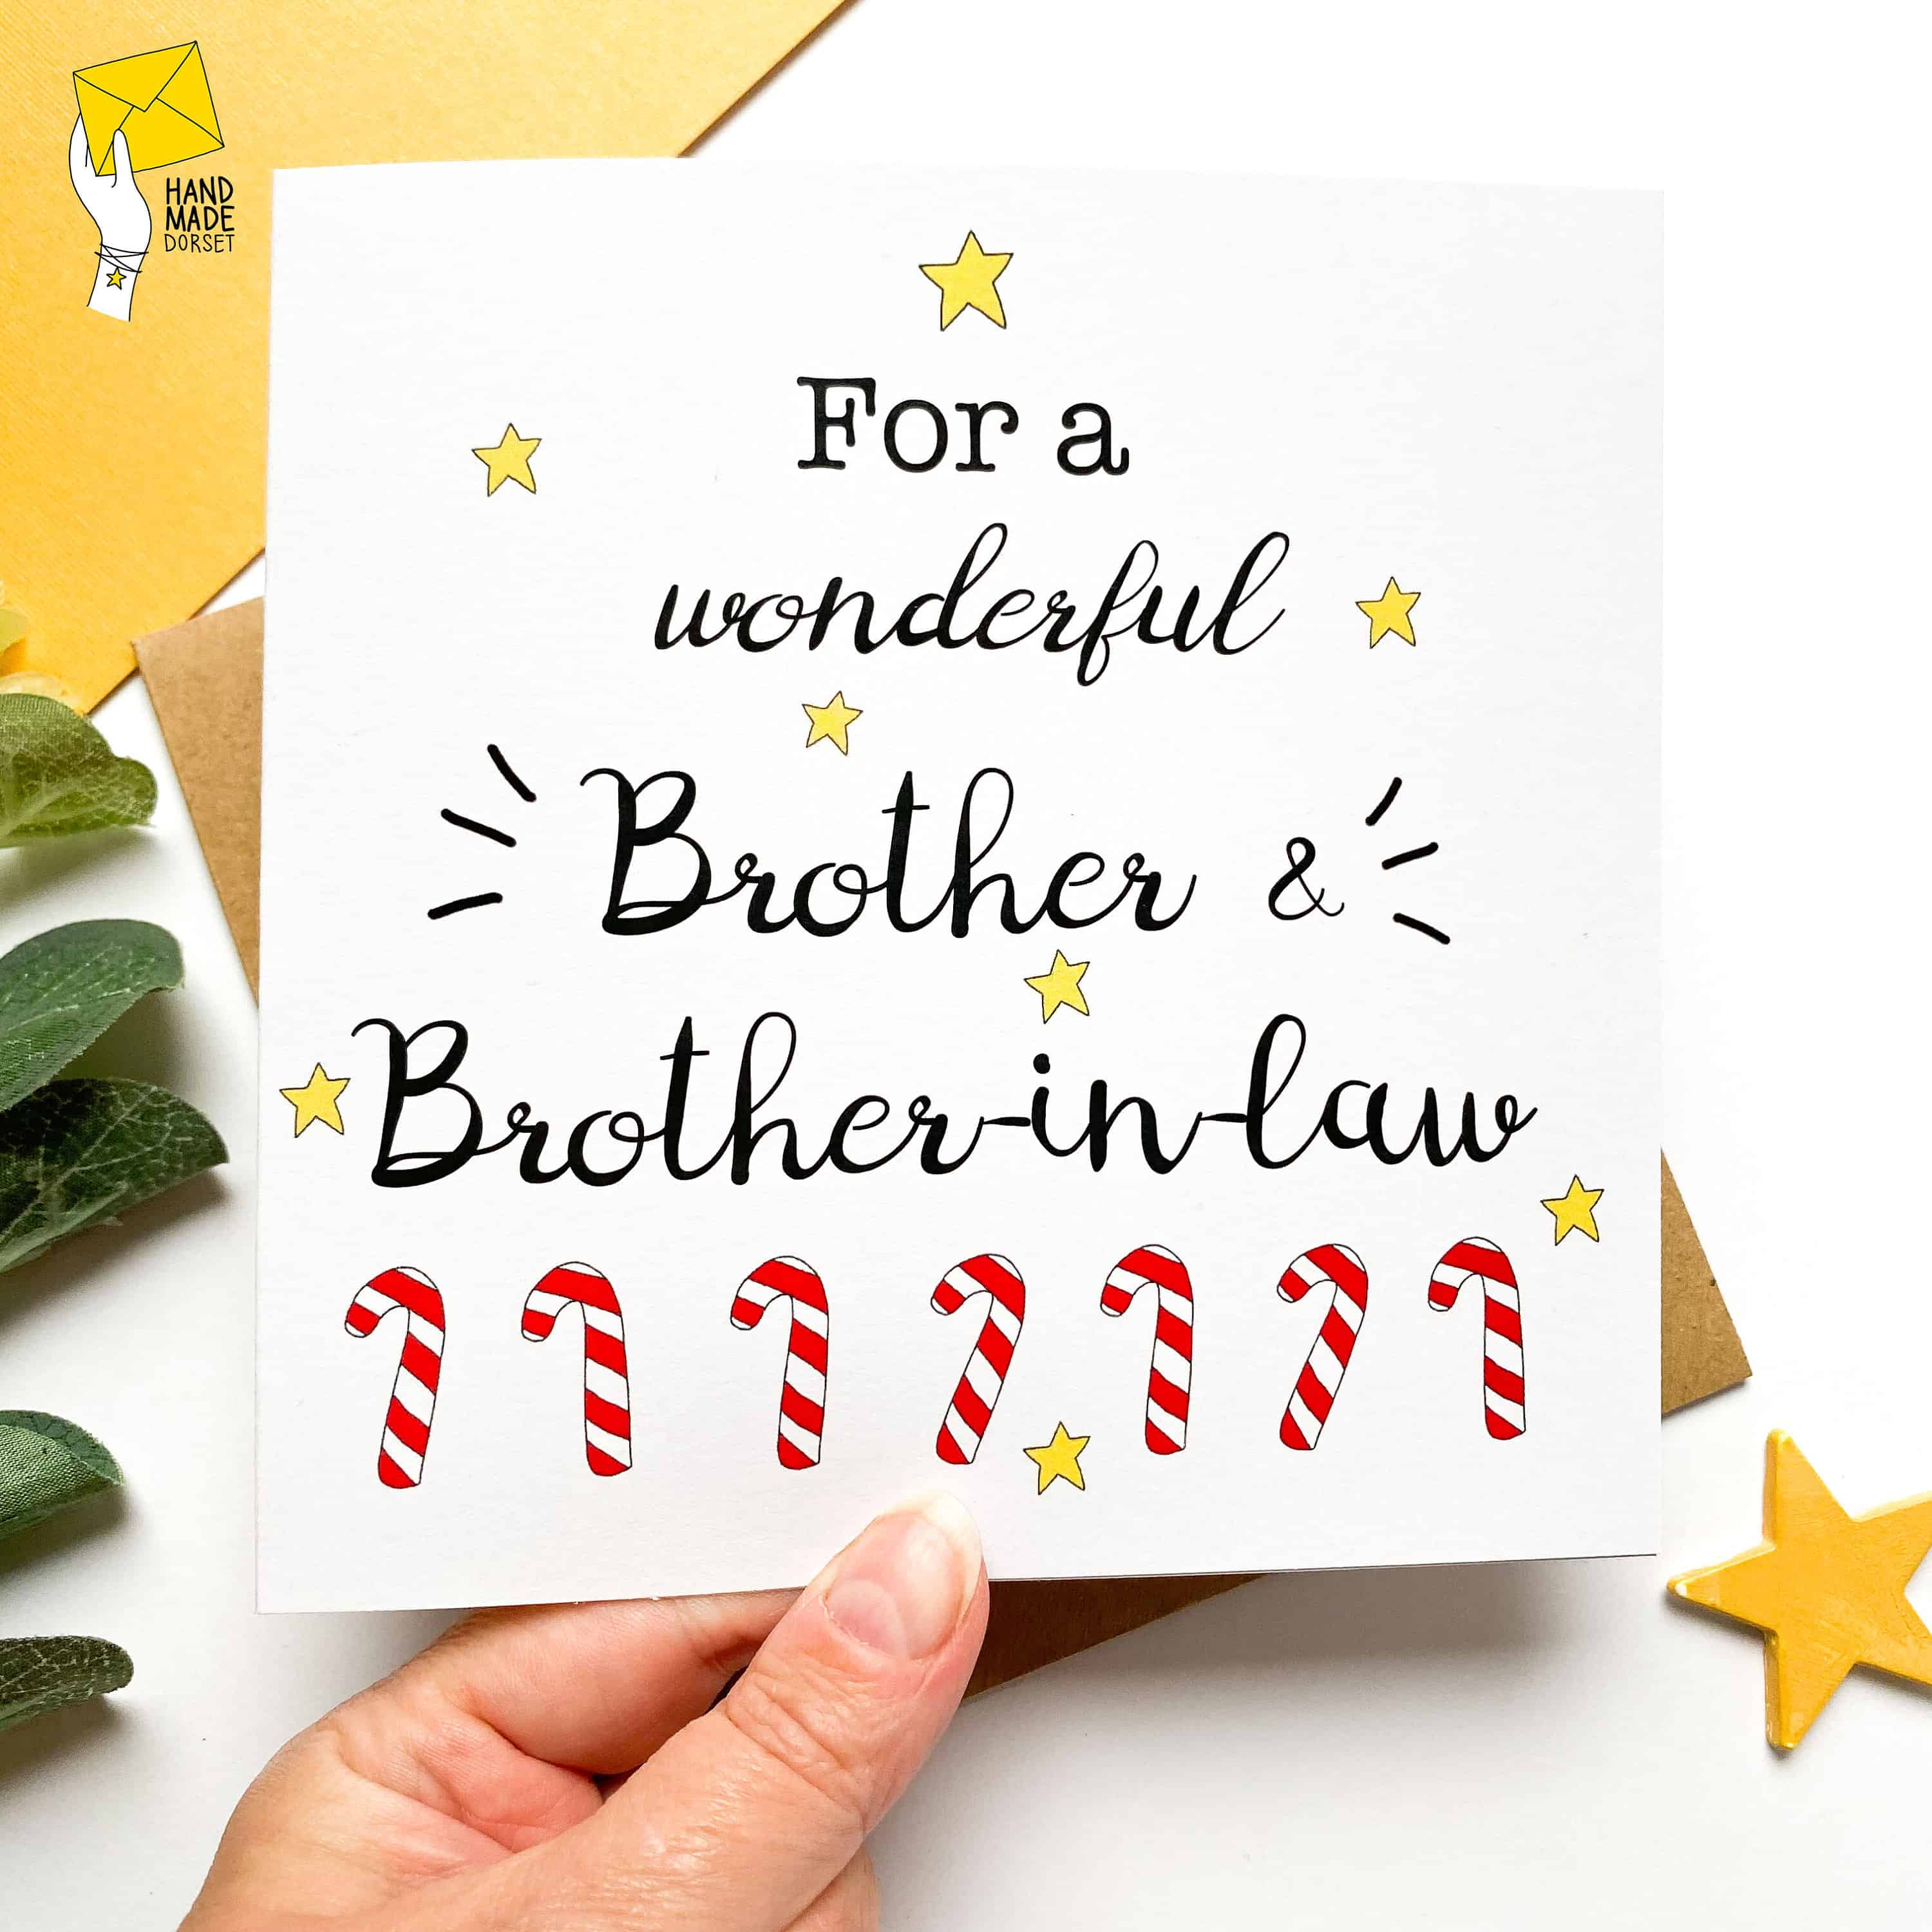 Brother and brother in law christmas card, Christmas card for brother & brother-in-law